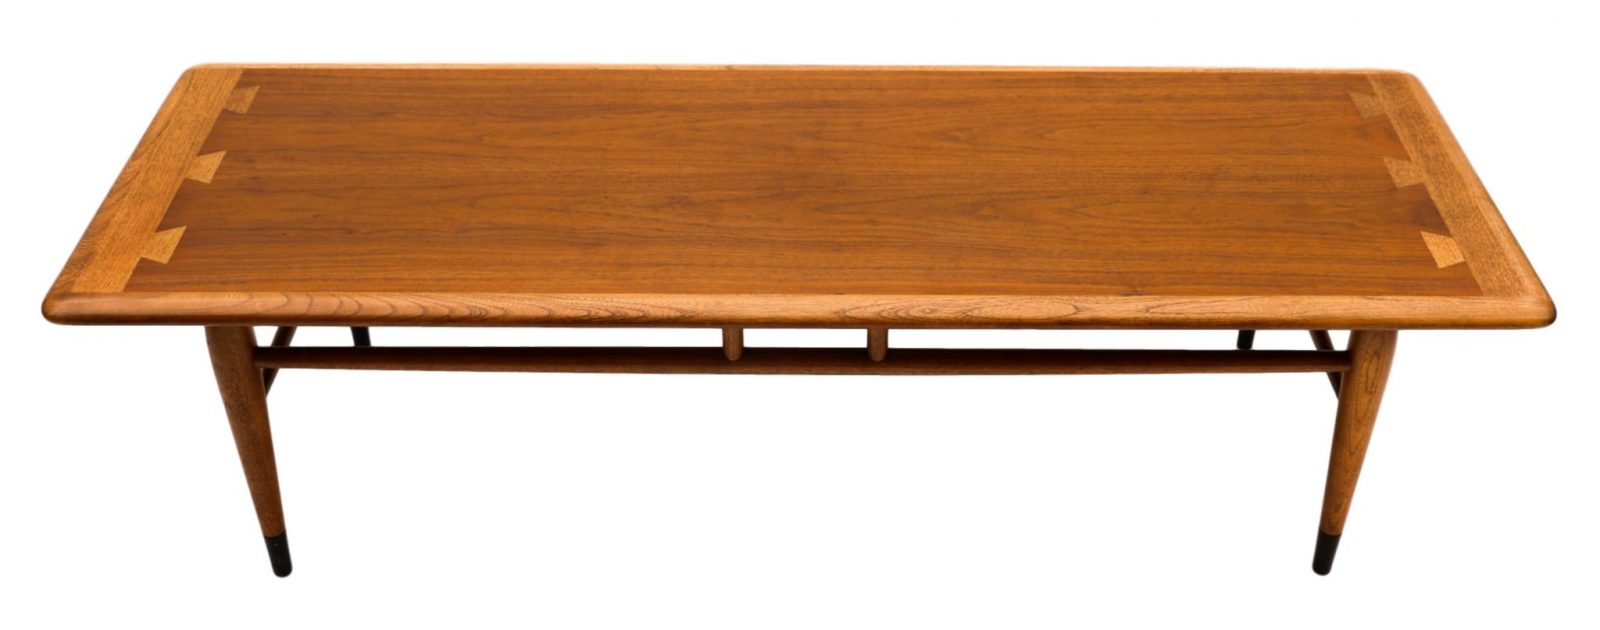 Mid century modern furniture lane coffee table inlaid for Mid century modern